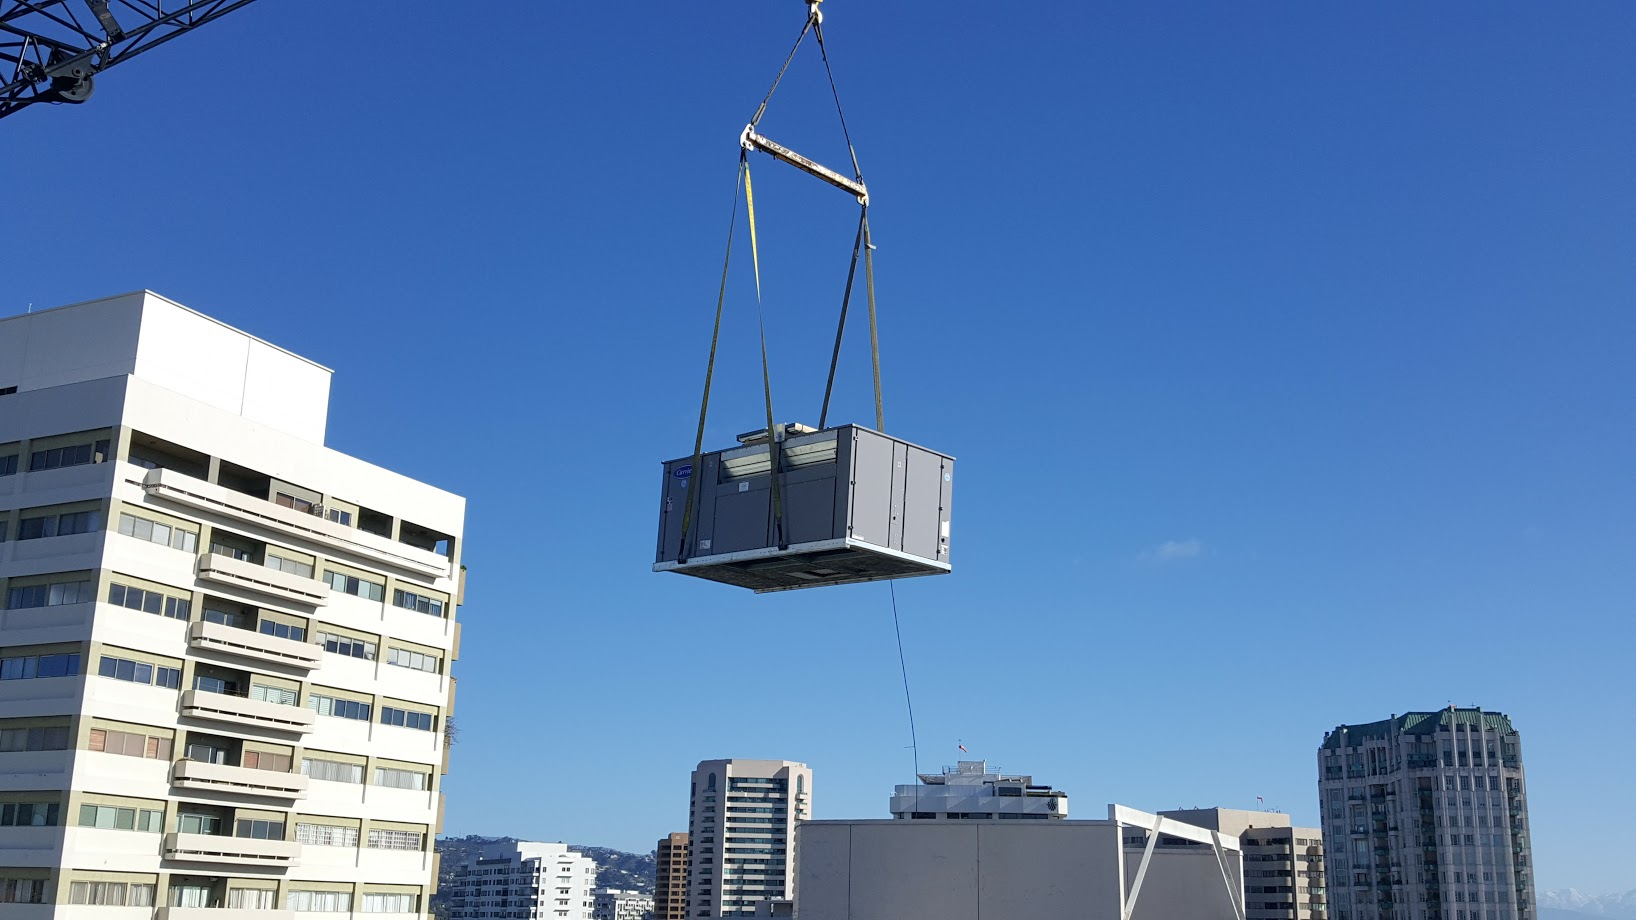 Carrier HVAC unit being lifted by a crane